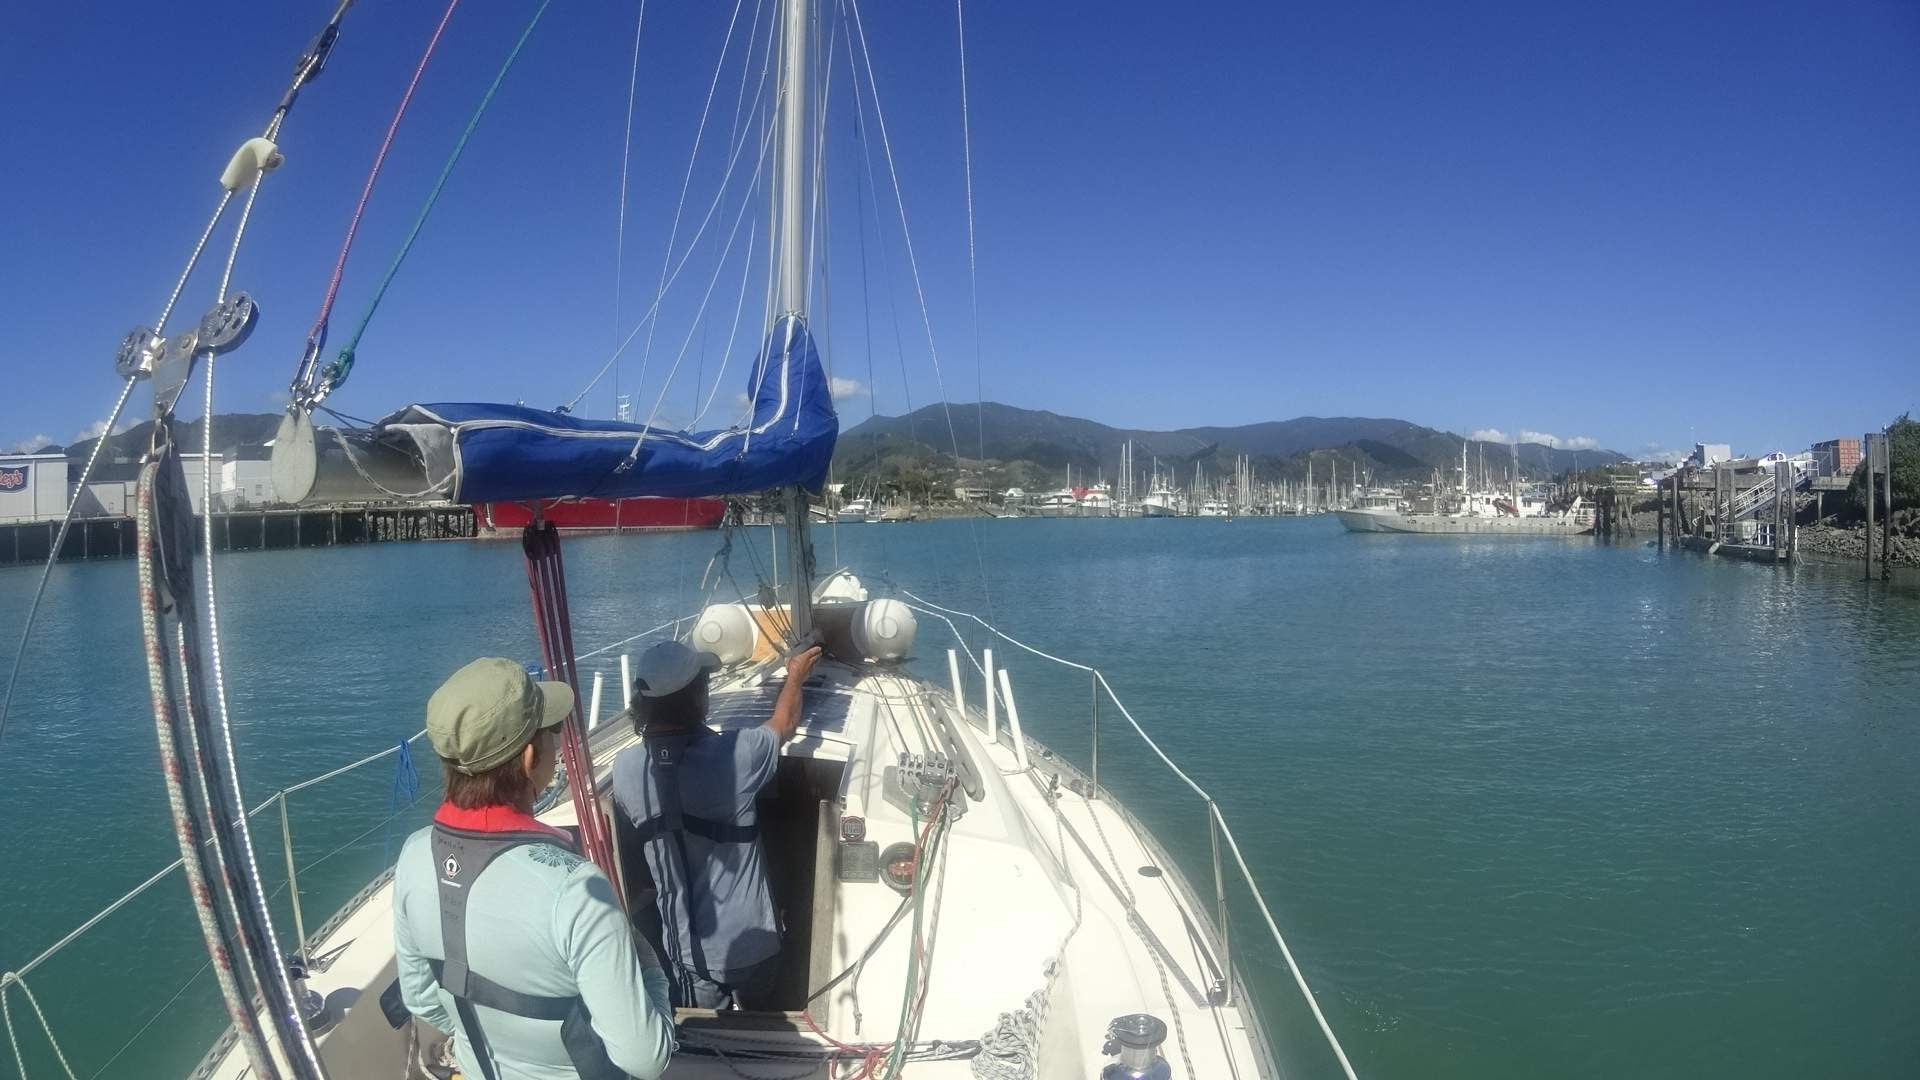 Arriving in Nelson Marina